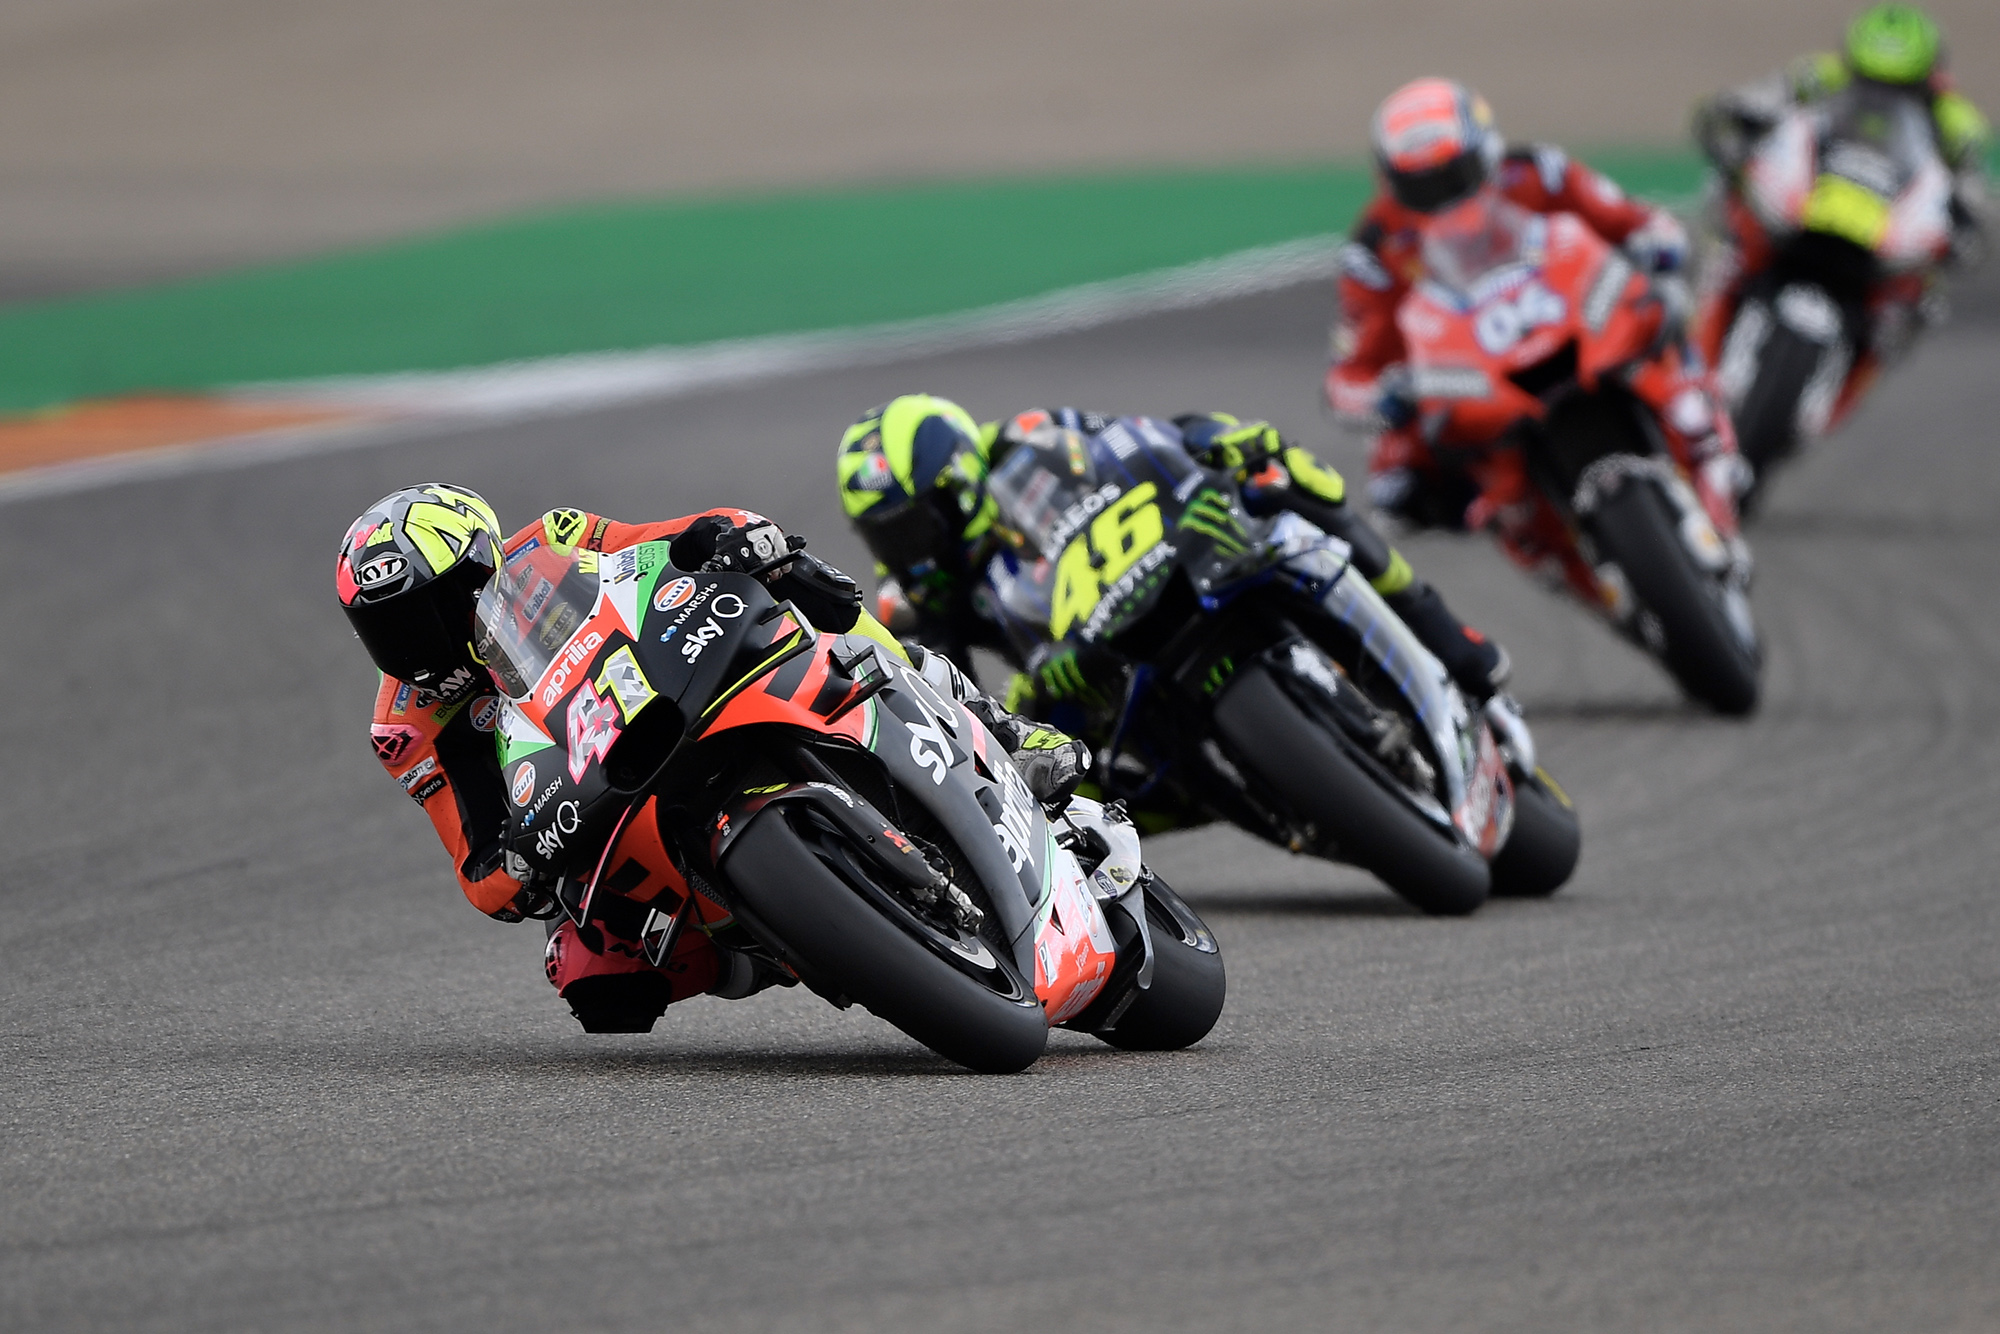 Espargaró leads Rossi, Dovizioso and Crutchlow at Aragon